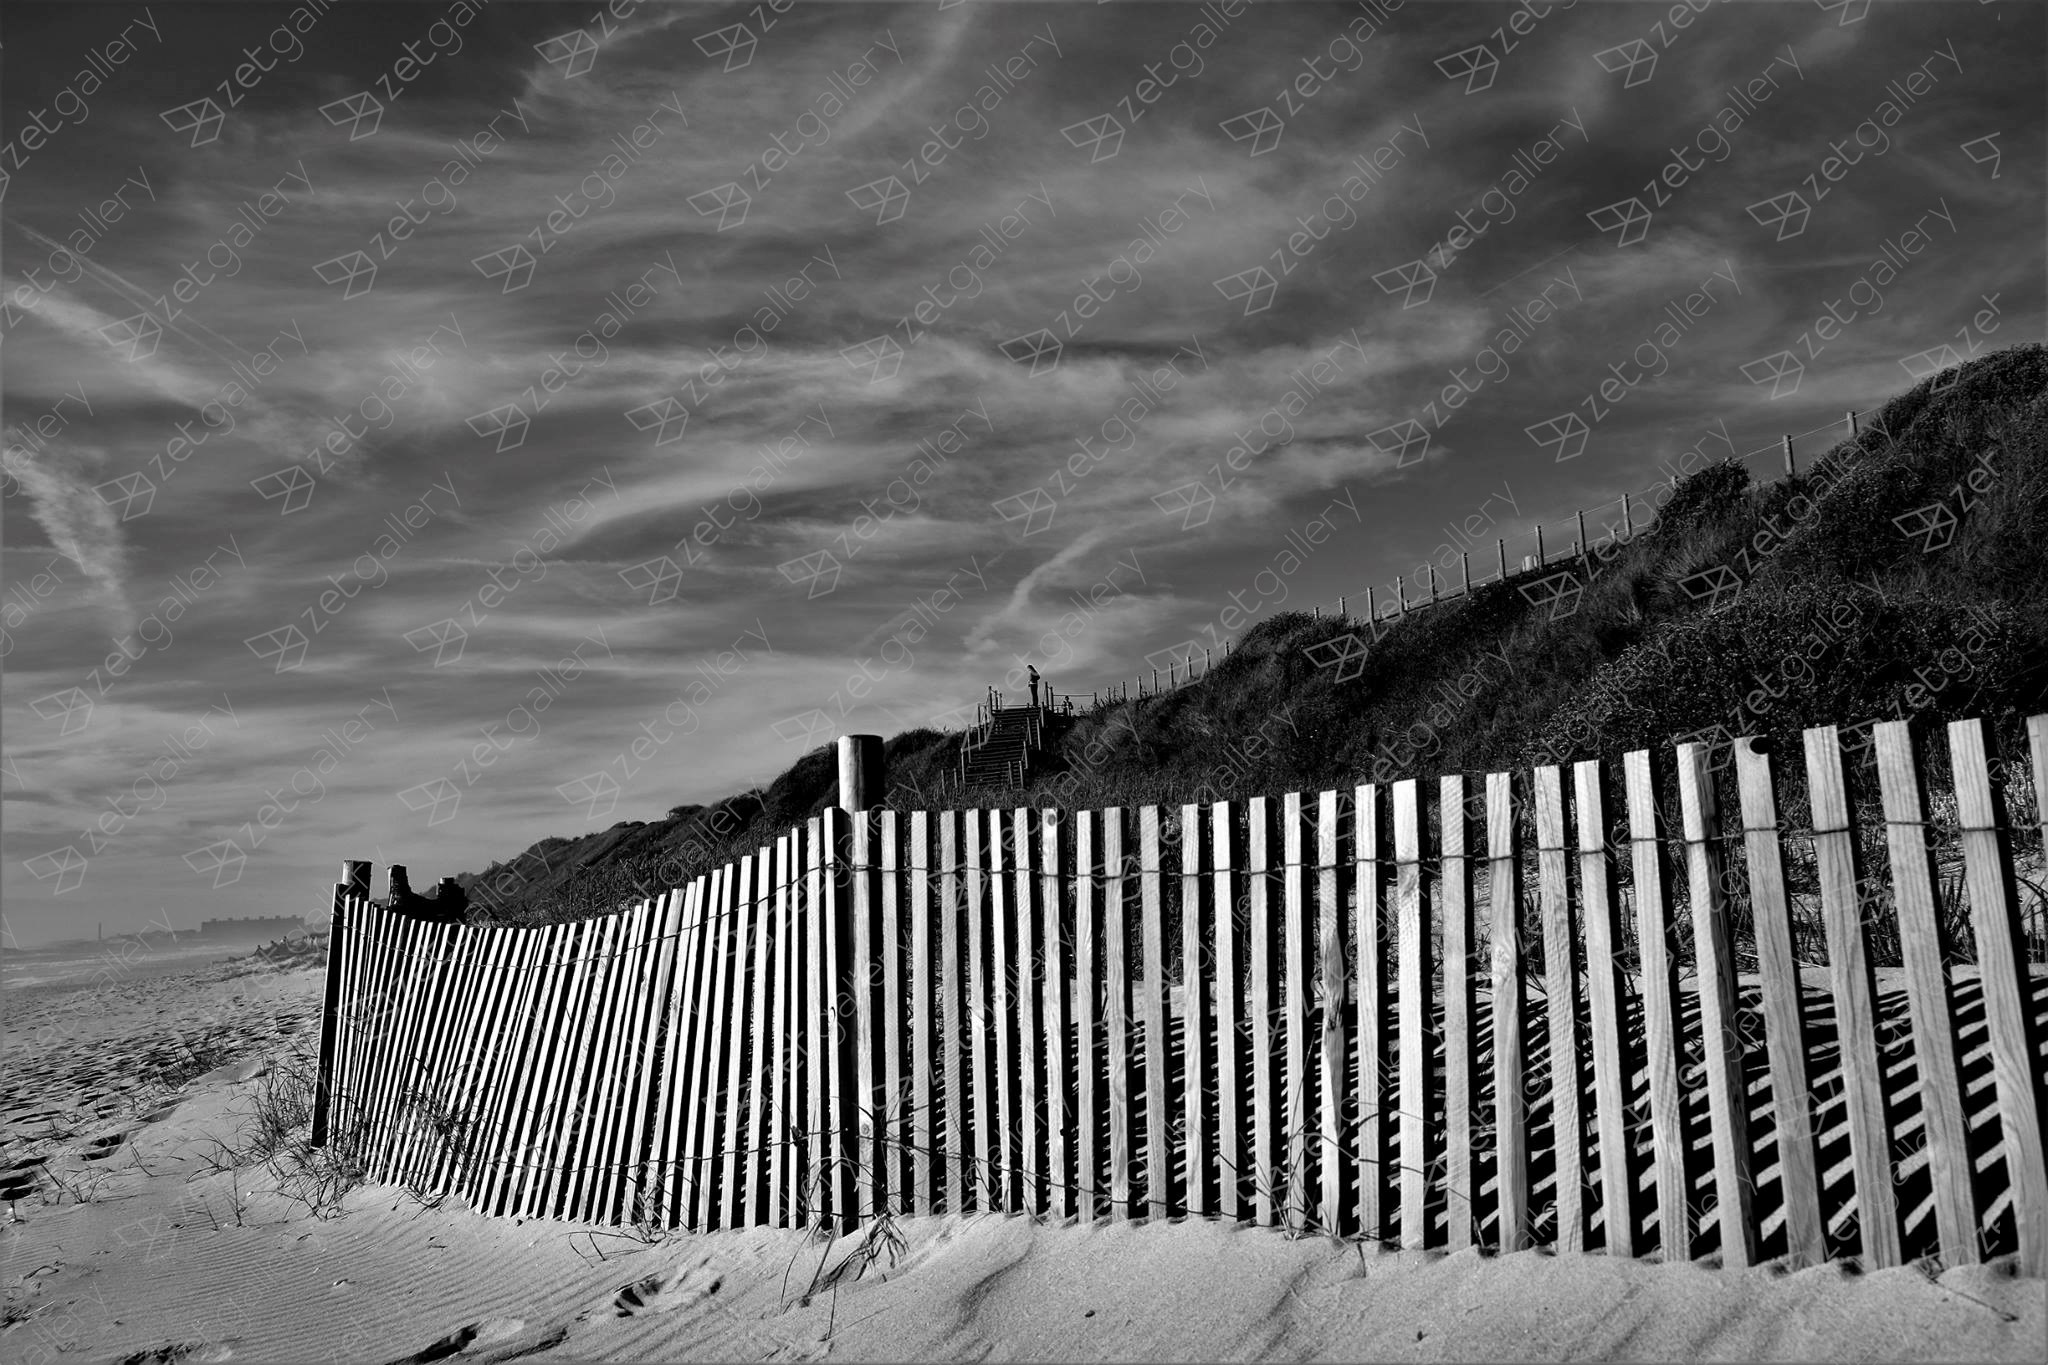 The fence, original B&W Analog Photography by Eduardo Rosas